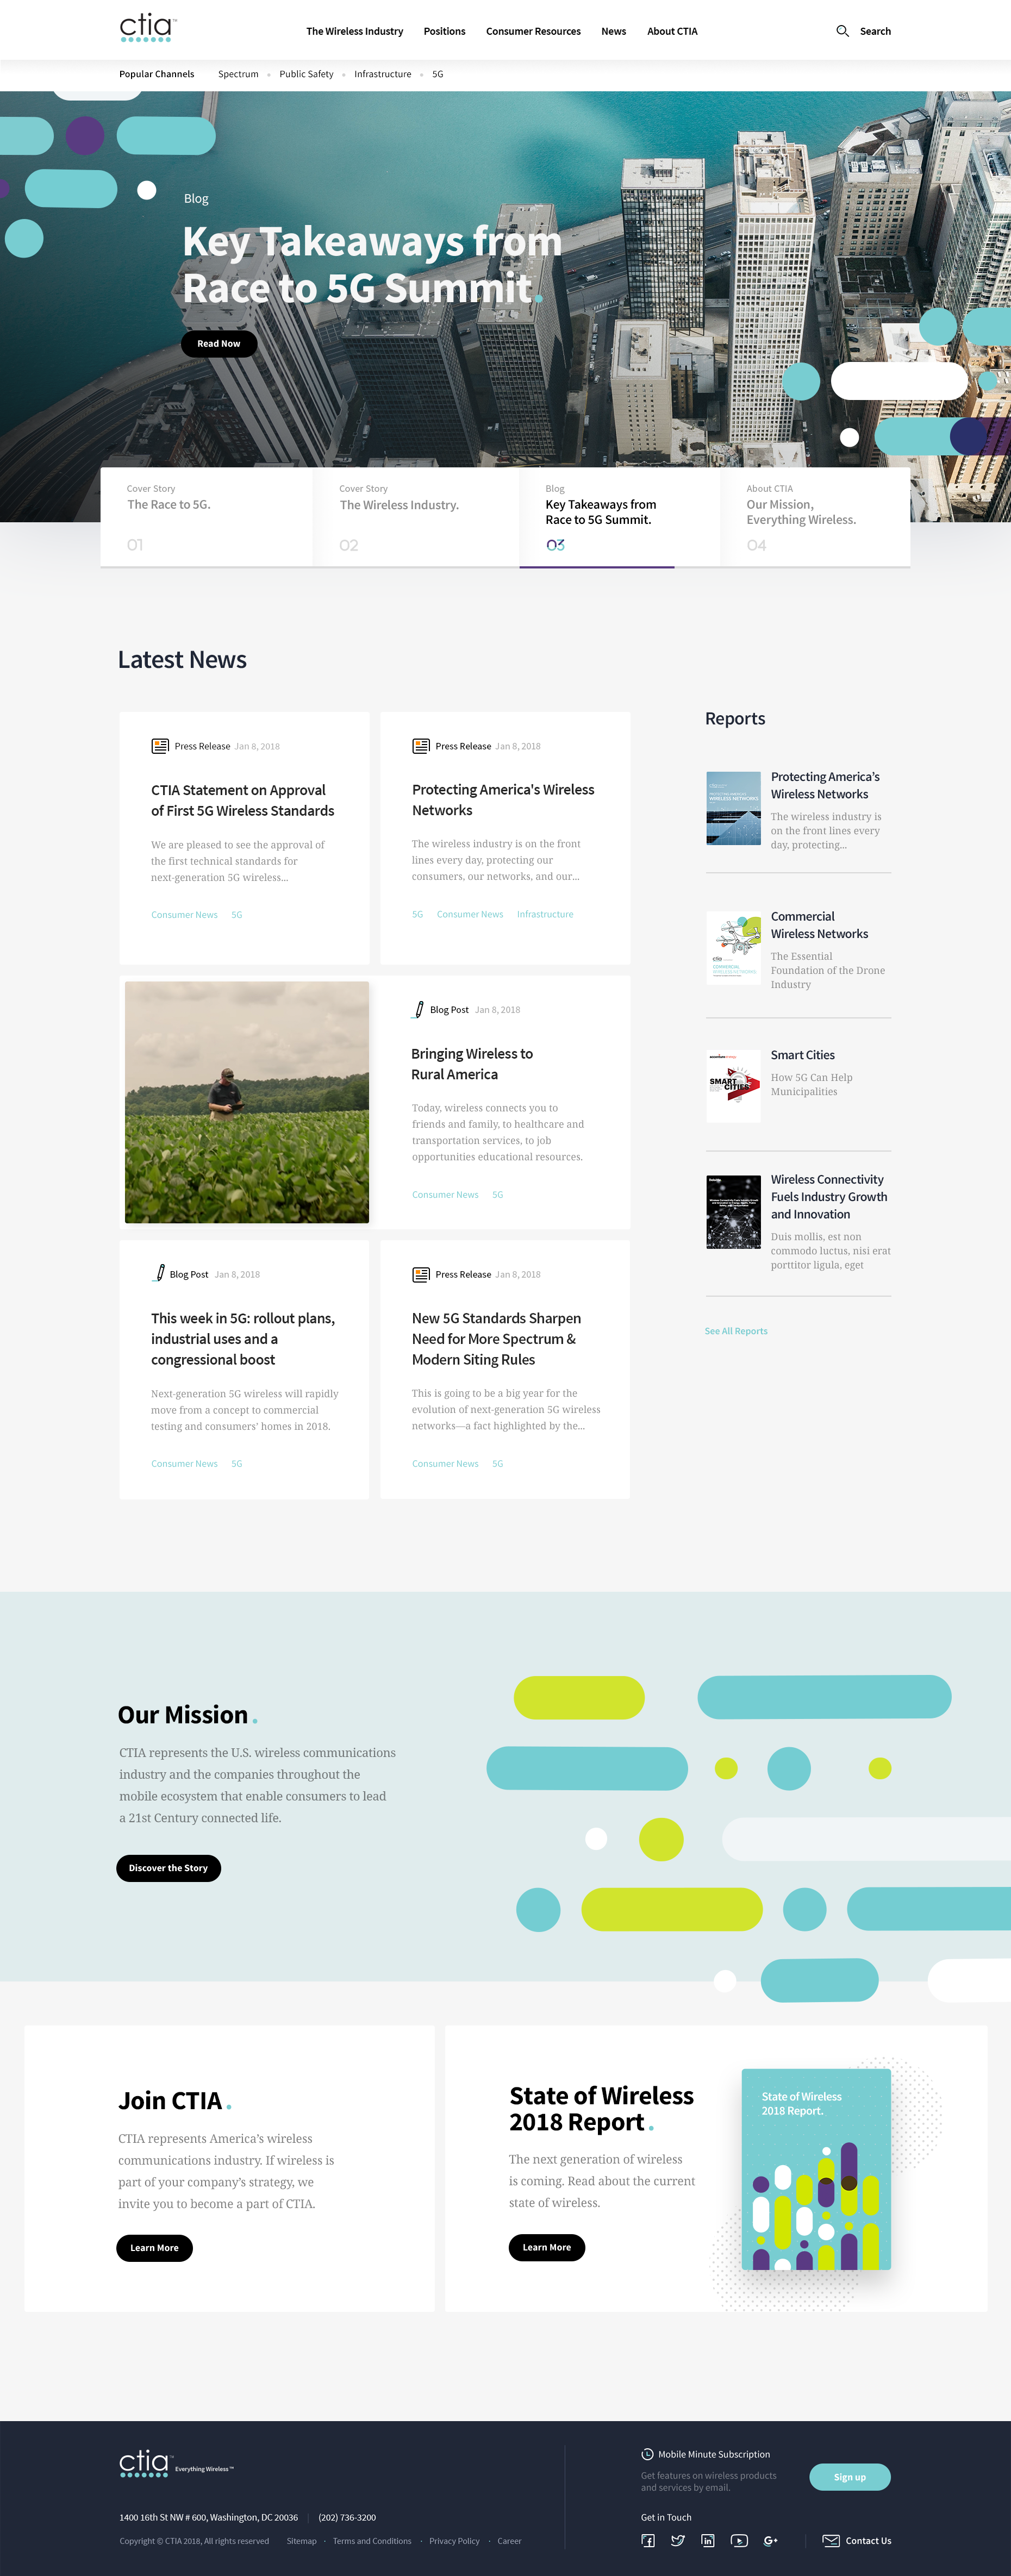 Like The Oval Design Elements Ties The Page Together Clean Blue Green Lime Gray Corporate Website Design Minimalistic Website Design Fun Website Design